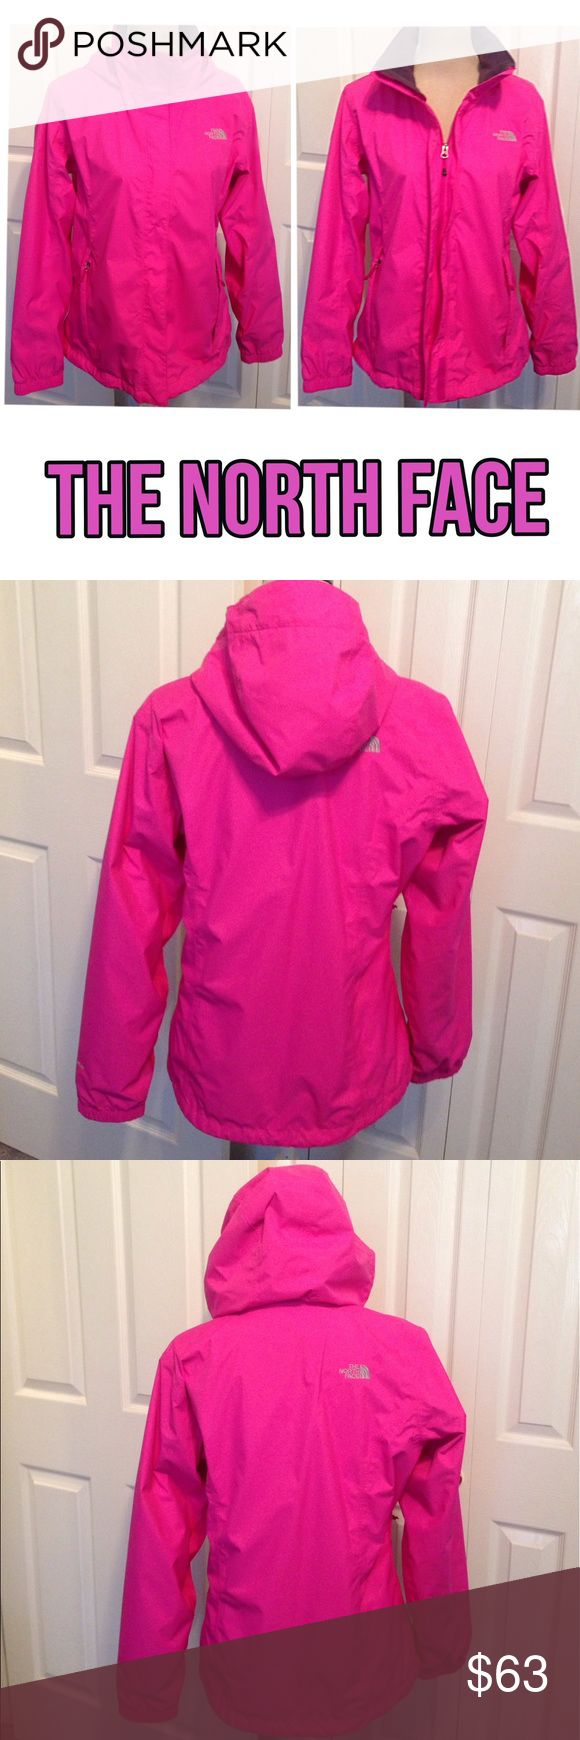 """North Face HyVent, Adjustable Collar/Hoodie Coat North Face HyVent, Pink Lightweight Water Resistant, Stay Dry Wind Breaker Jacket/Coat. Perfect for hiking, golfing, Skiing or casual coat for any season. Front zip close with Velcro strips to cover zipper (see 1st & 6th pic difference) for smooth look. Adjustable high or low style collar & option to fold hoodie inside collar. 2 zip side pockets with stay dry mesh lining. North Face logo on top front & on back.✅Chest 45"""", Waist 40"""" & 26"""" Long…"""